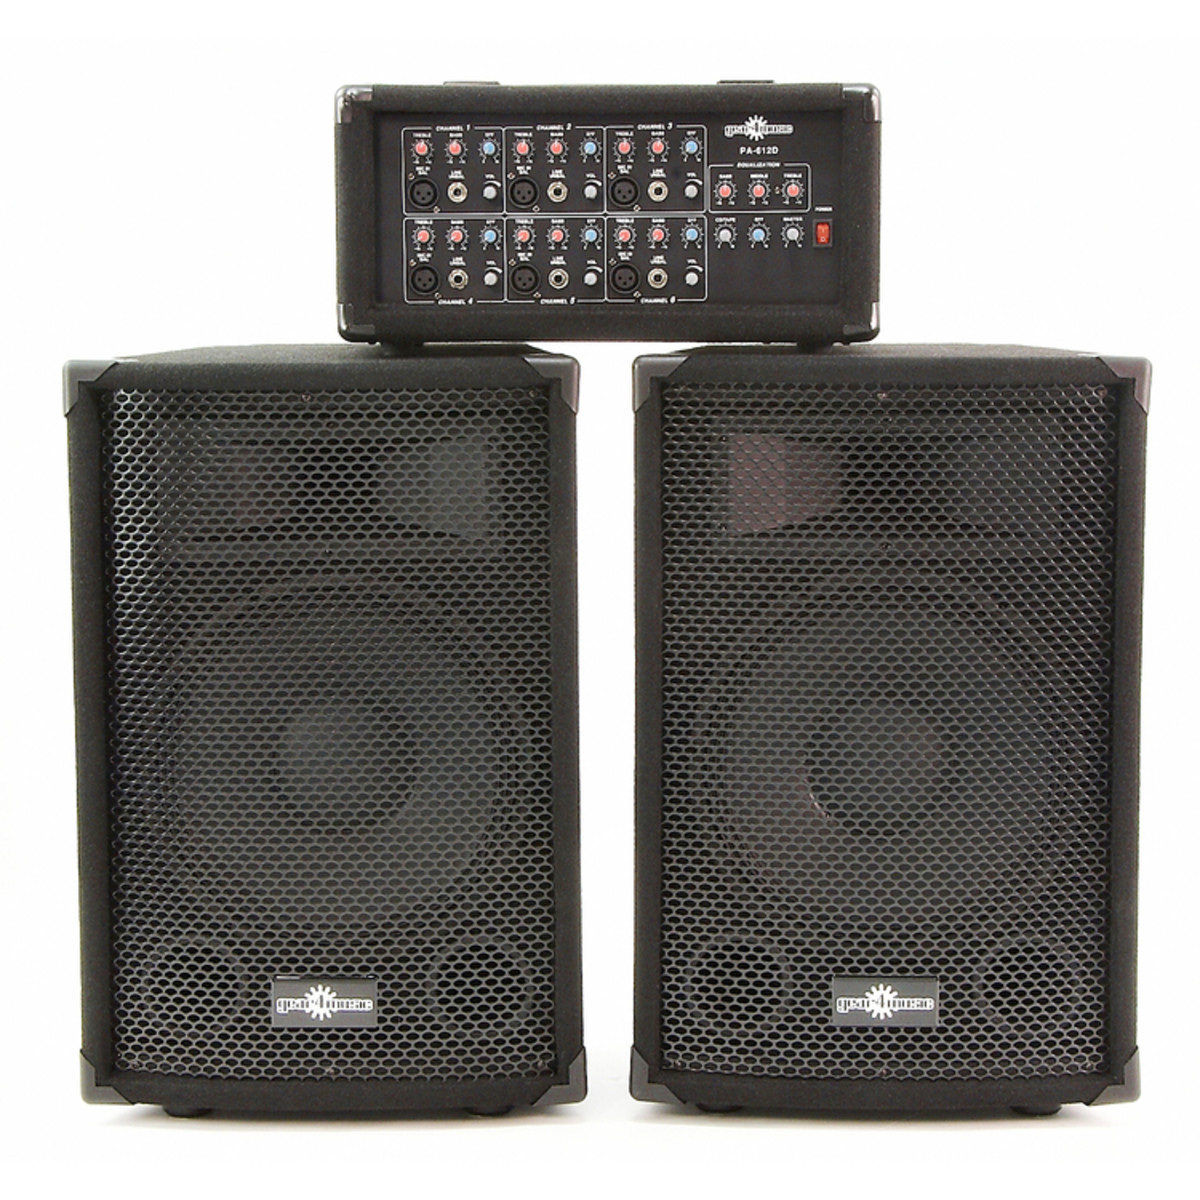 200w pa system with mixer speakers at. Black Bedroom Furniture Sets. Home Design Ideas